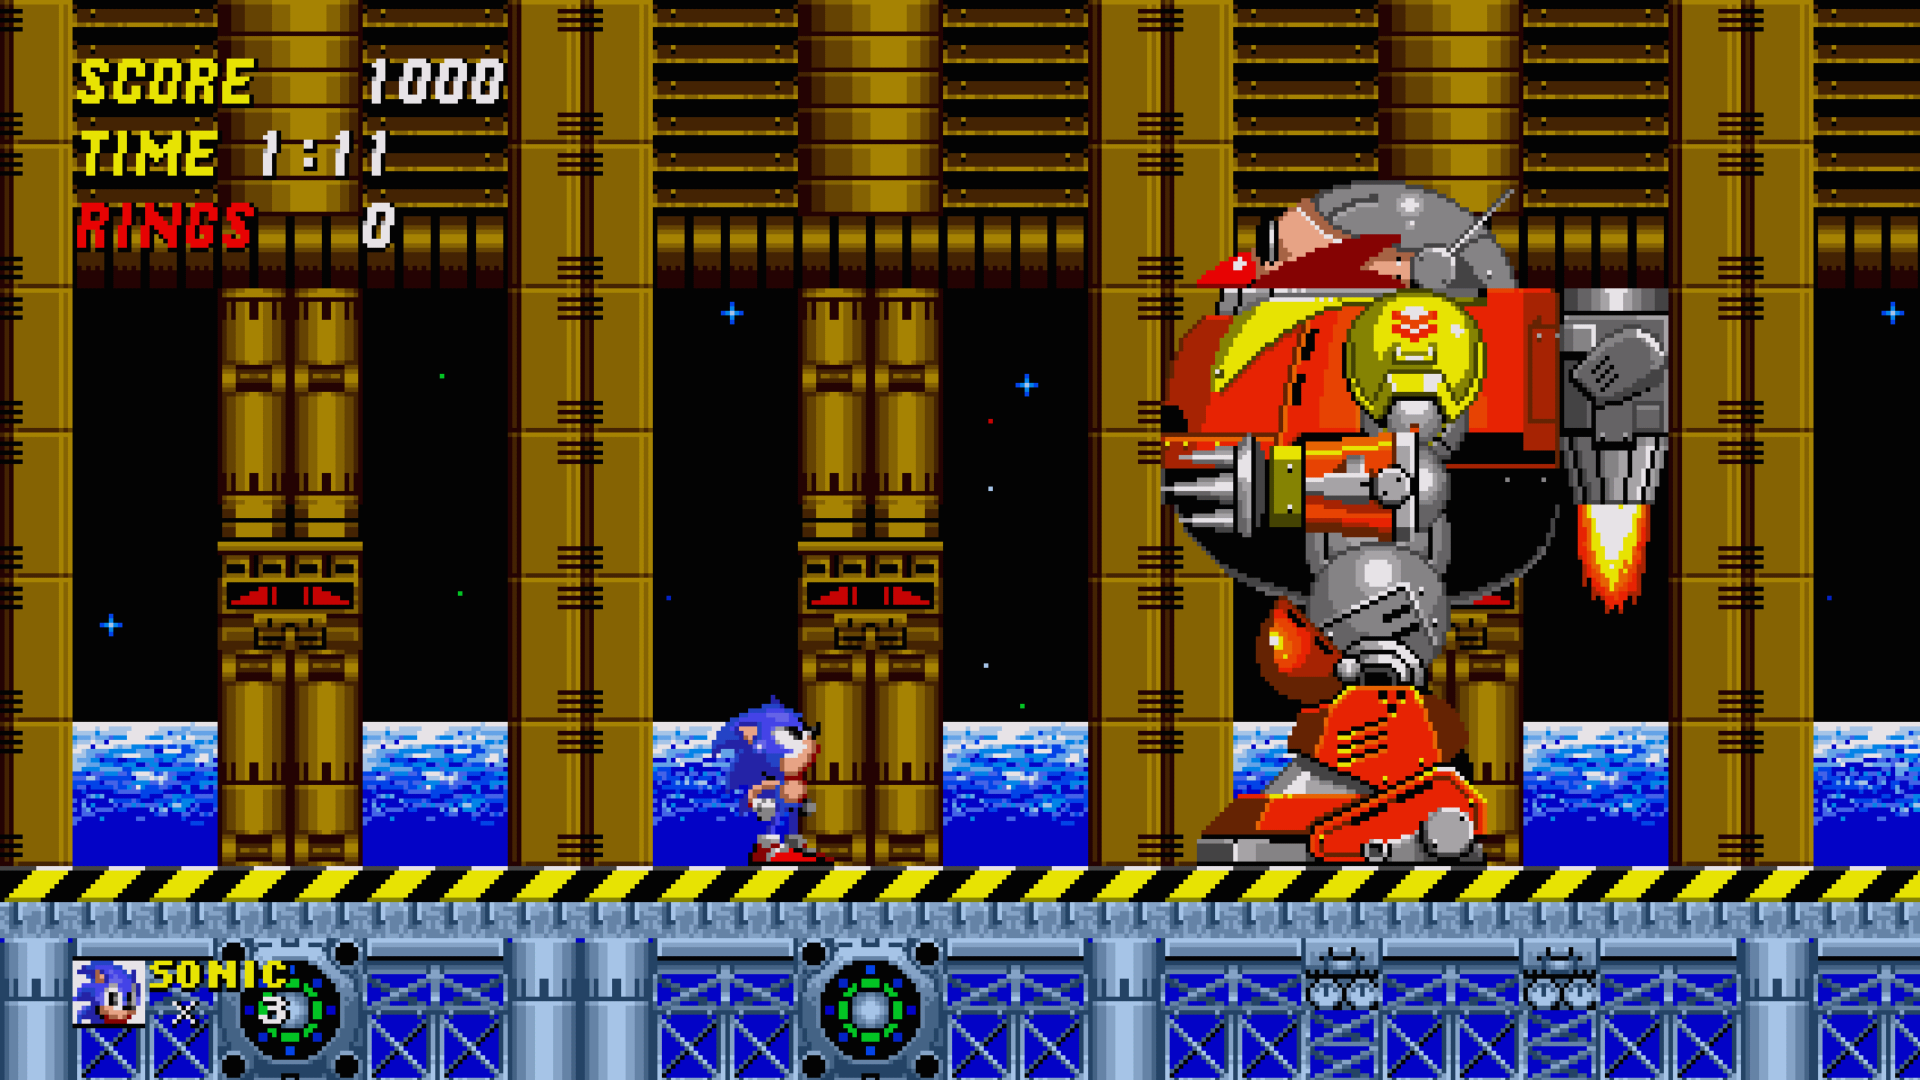 Sonic The Hedgehog 2 Classic screenshot 13